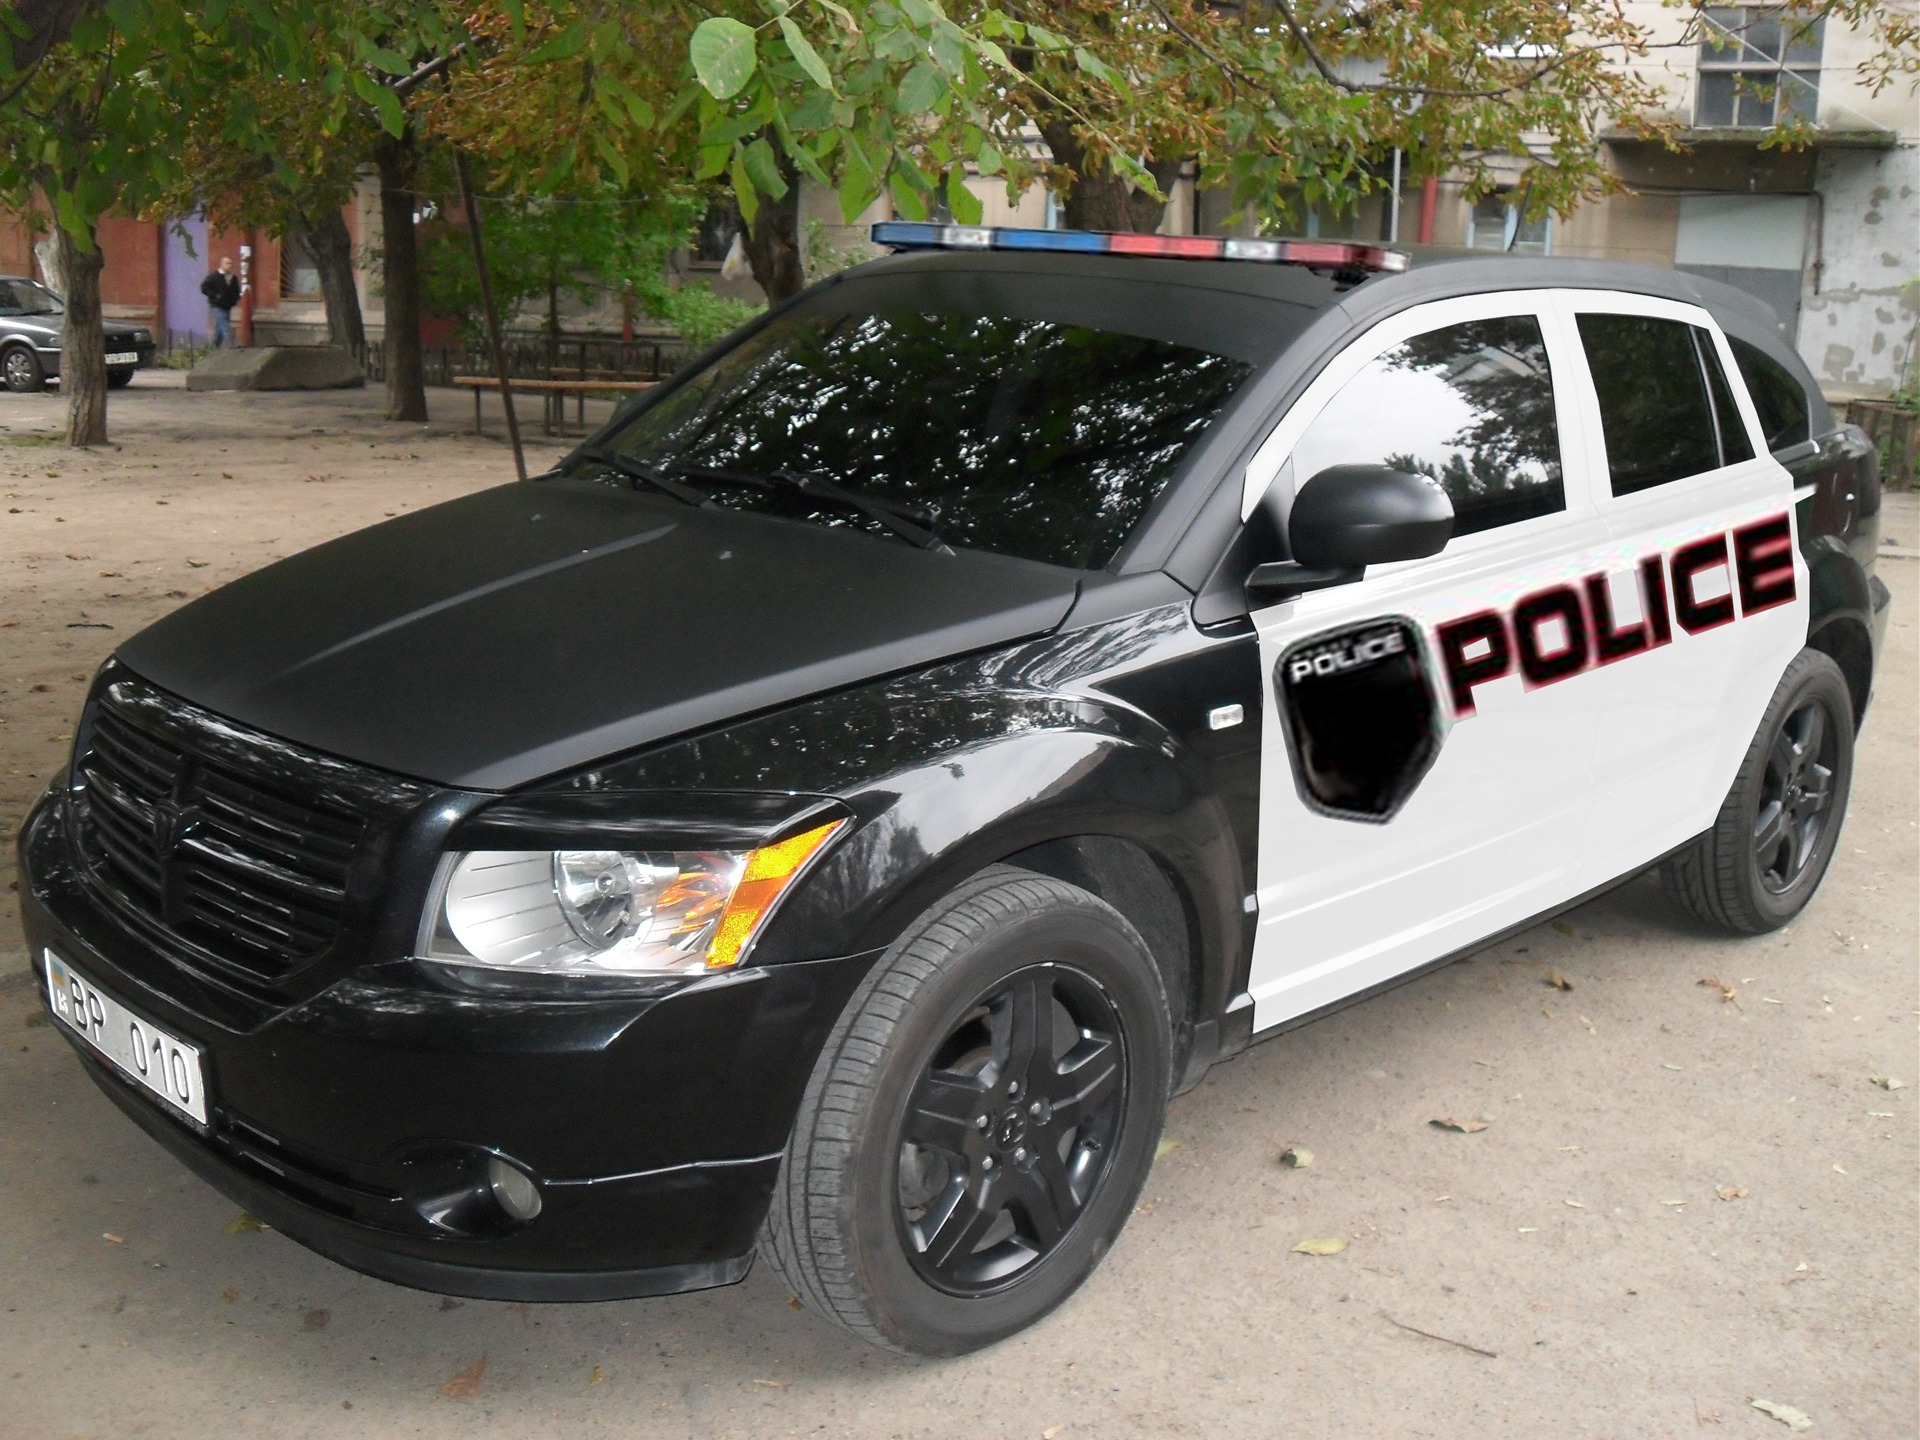 Dodge Caliber Police Car Stoit Li Bortzhurnal Dodge Caliber